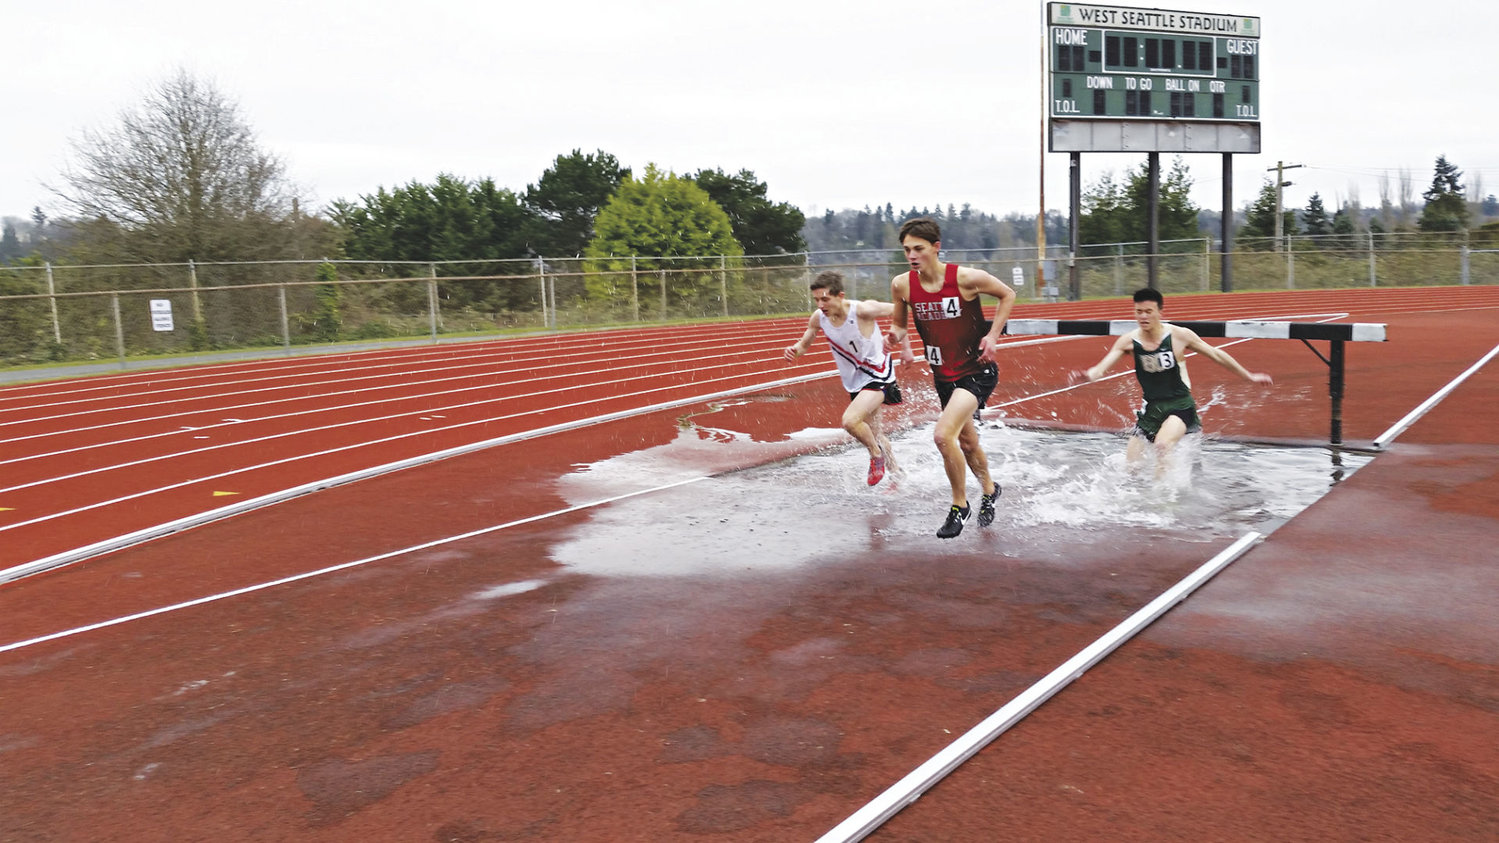 Port Townsend High School track and field member Seamus Fraser pulls away from the eventual fourth- and fifth-placers in the steeplechase, before coming in third at the West Seattle Stadium March 17. Photo courtesy of Ian Fraser